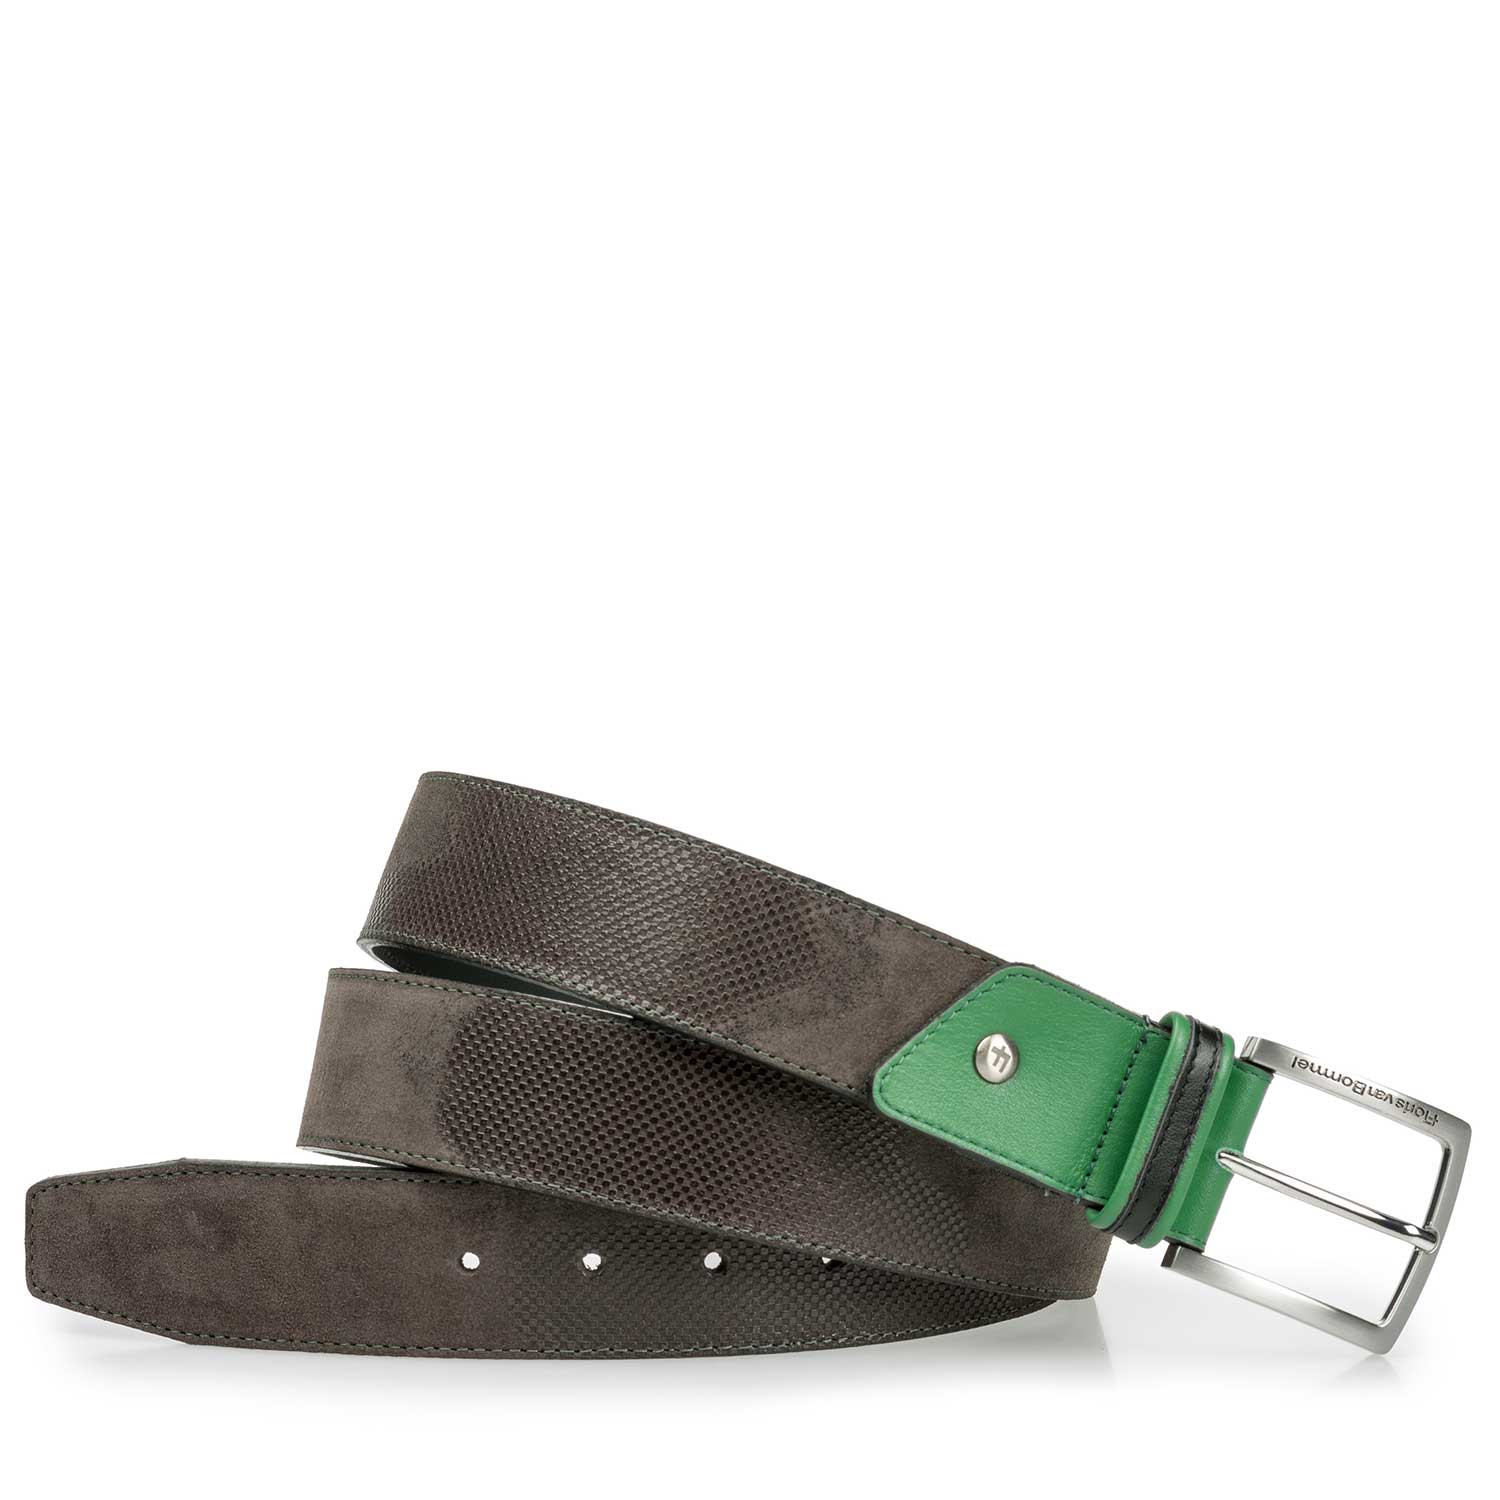 75193/02 - Blue/ Green canvas belt with green accents